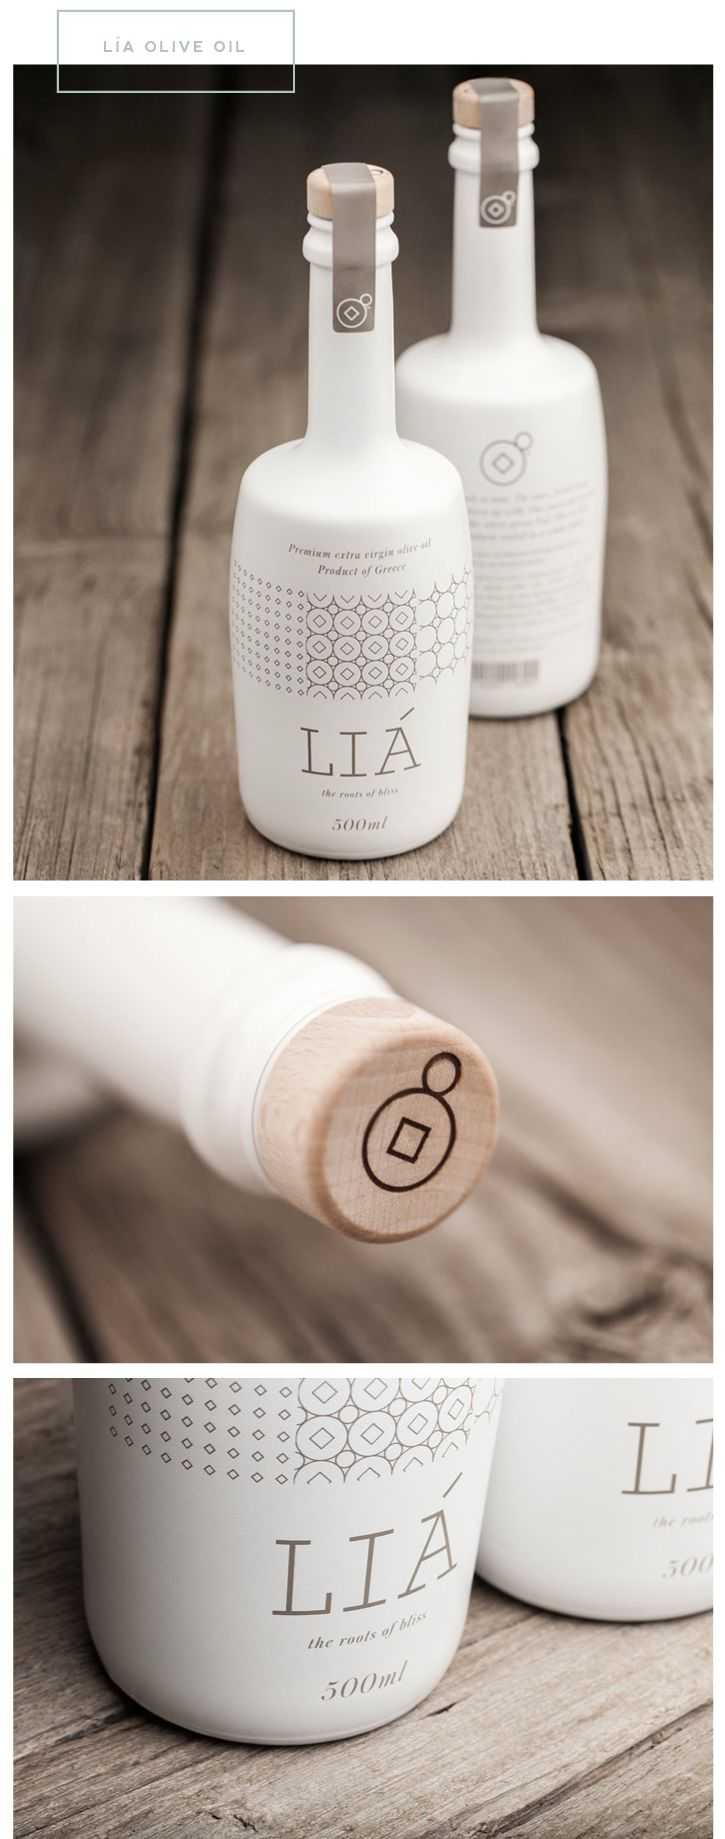 Brand and packaging design for LIA olive oil | Designed by Bob Studio